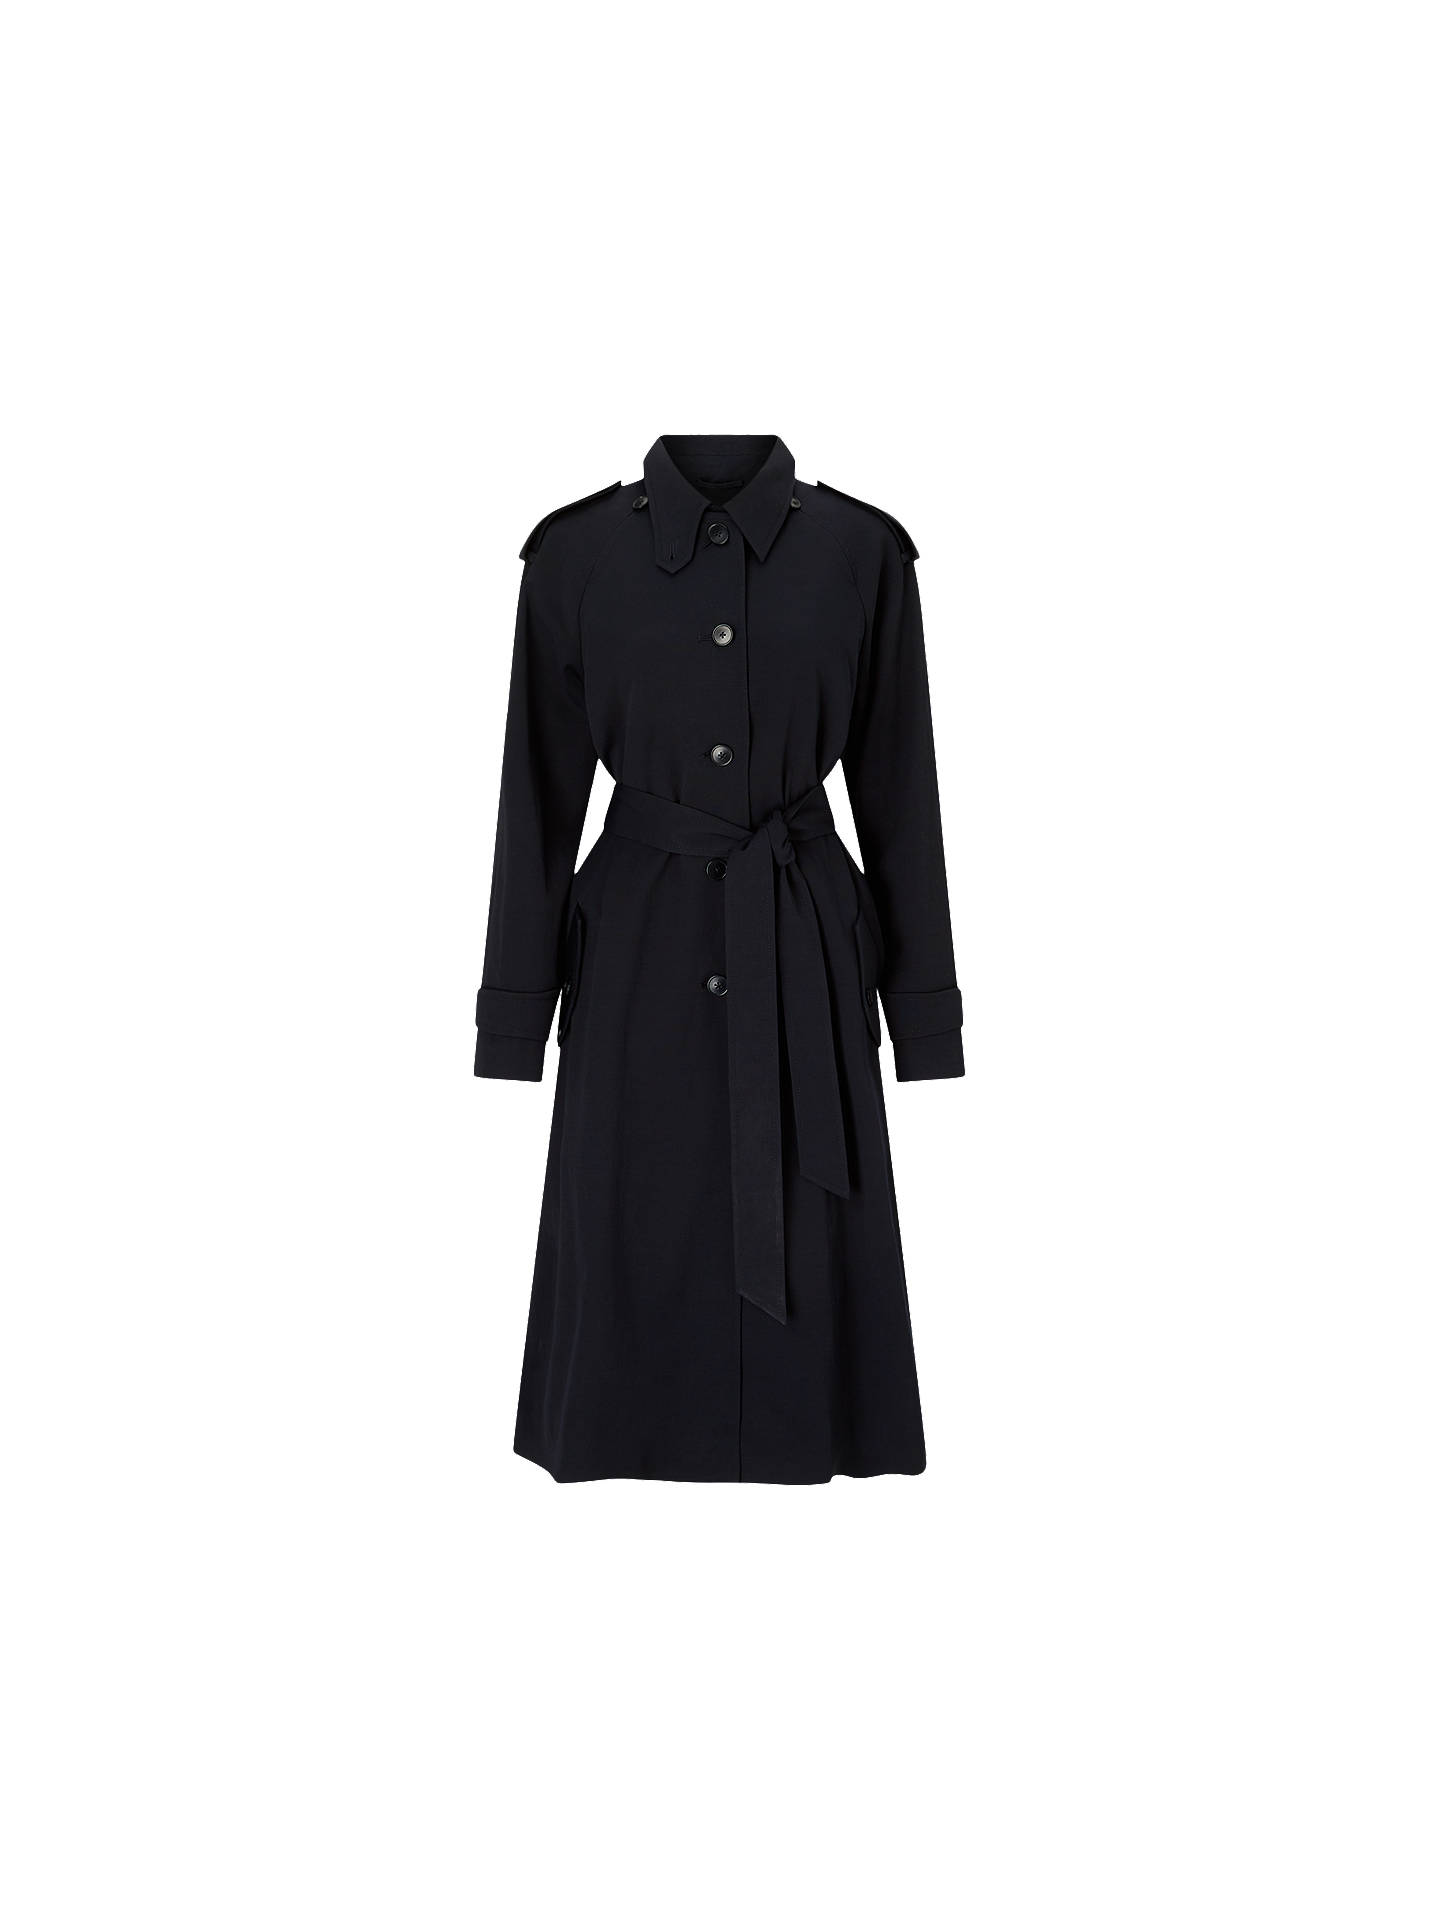 BuyJigsaw Detachable Collar Mac, Navy, S Online at johnlewis.com